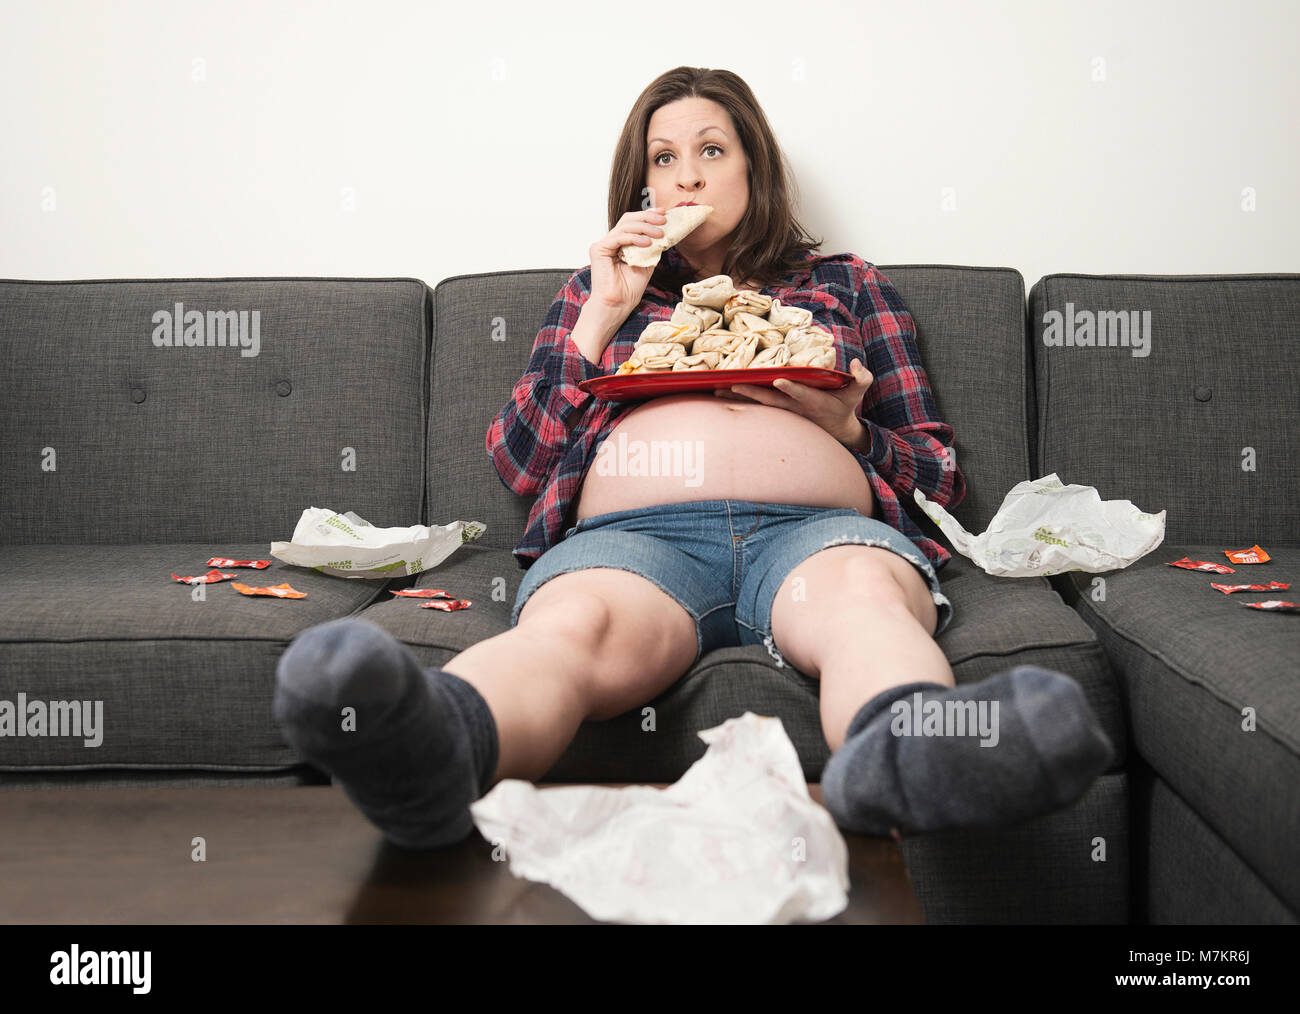 A woman satisfying her pregnancy cravings - Stock Image